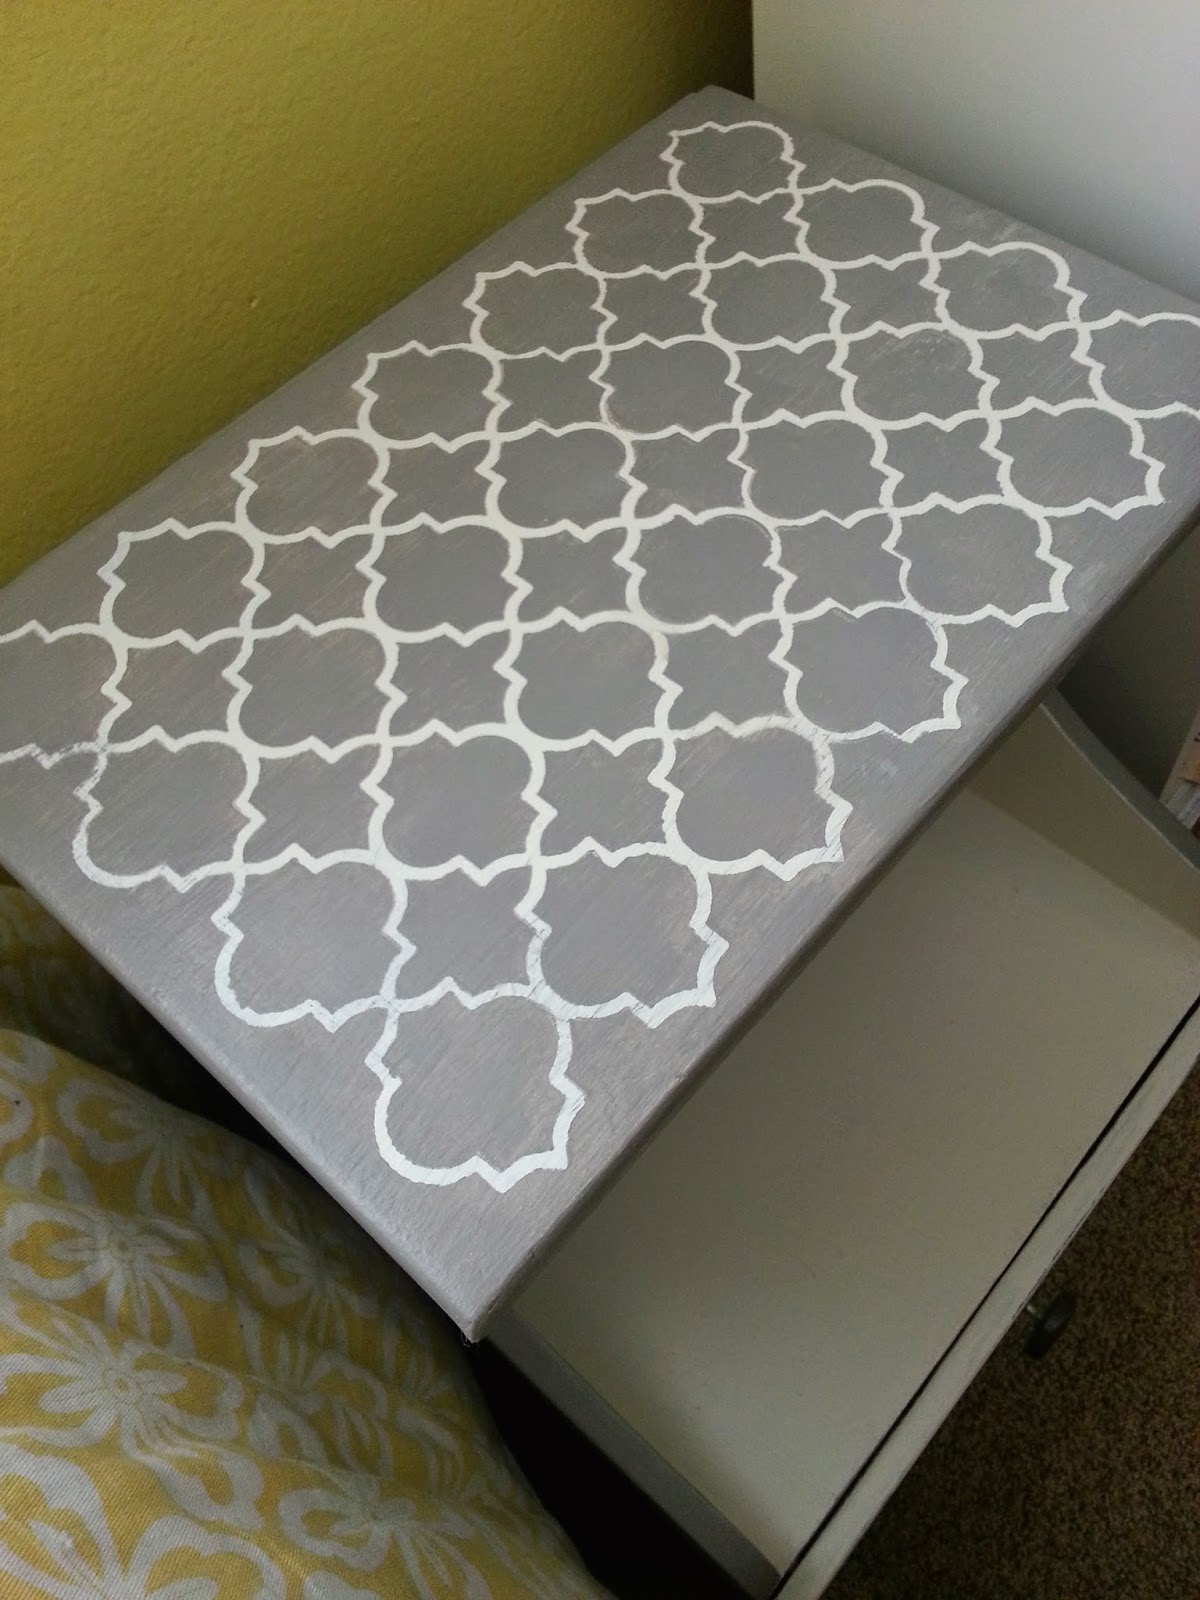 How to stencil designs on furniture